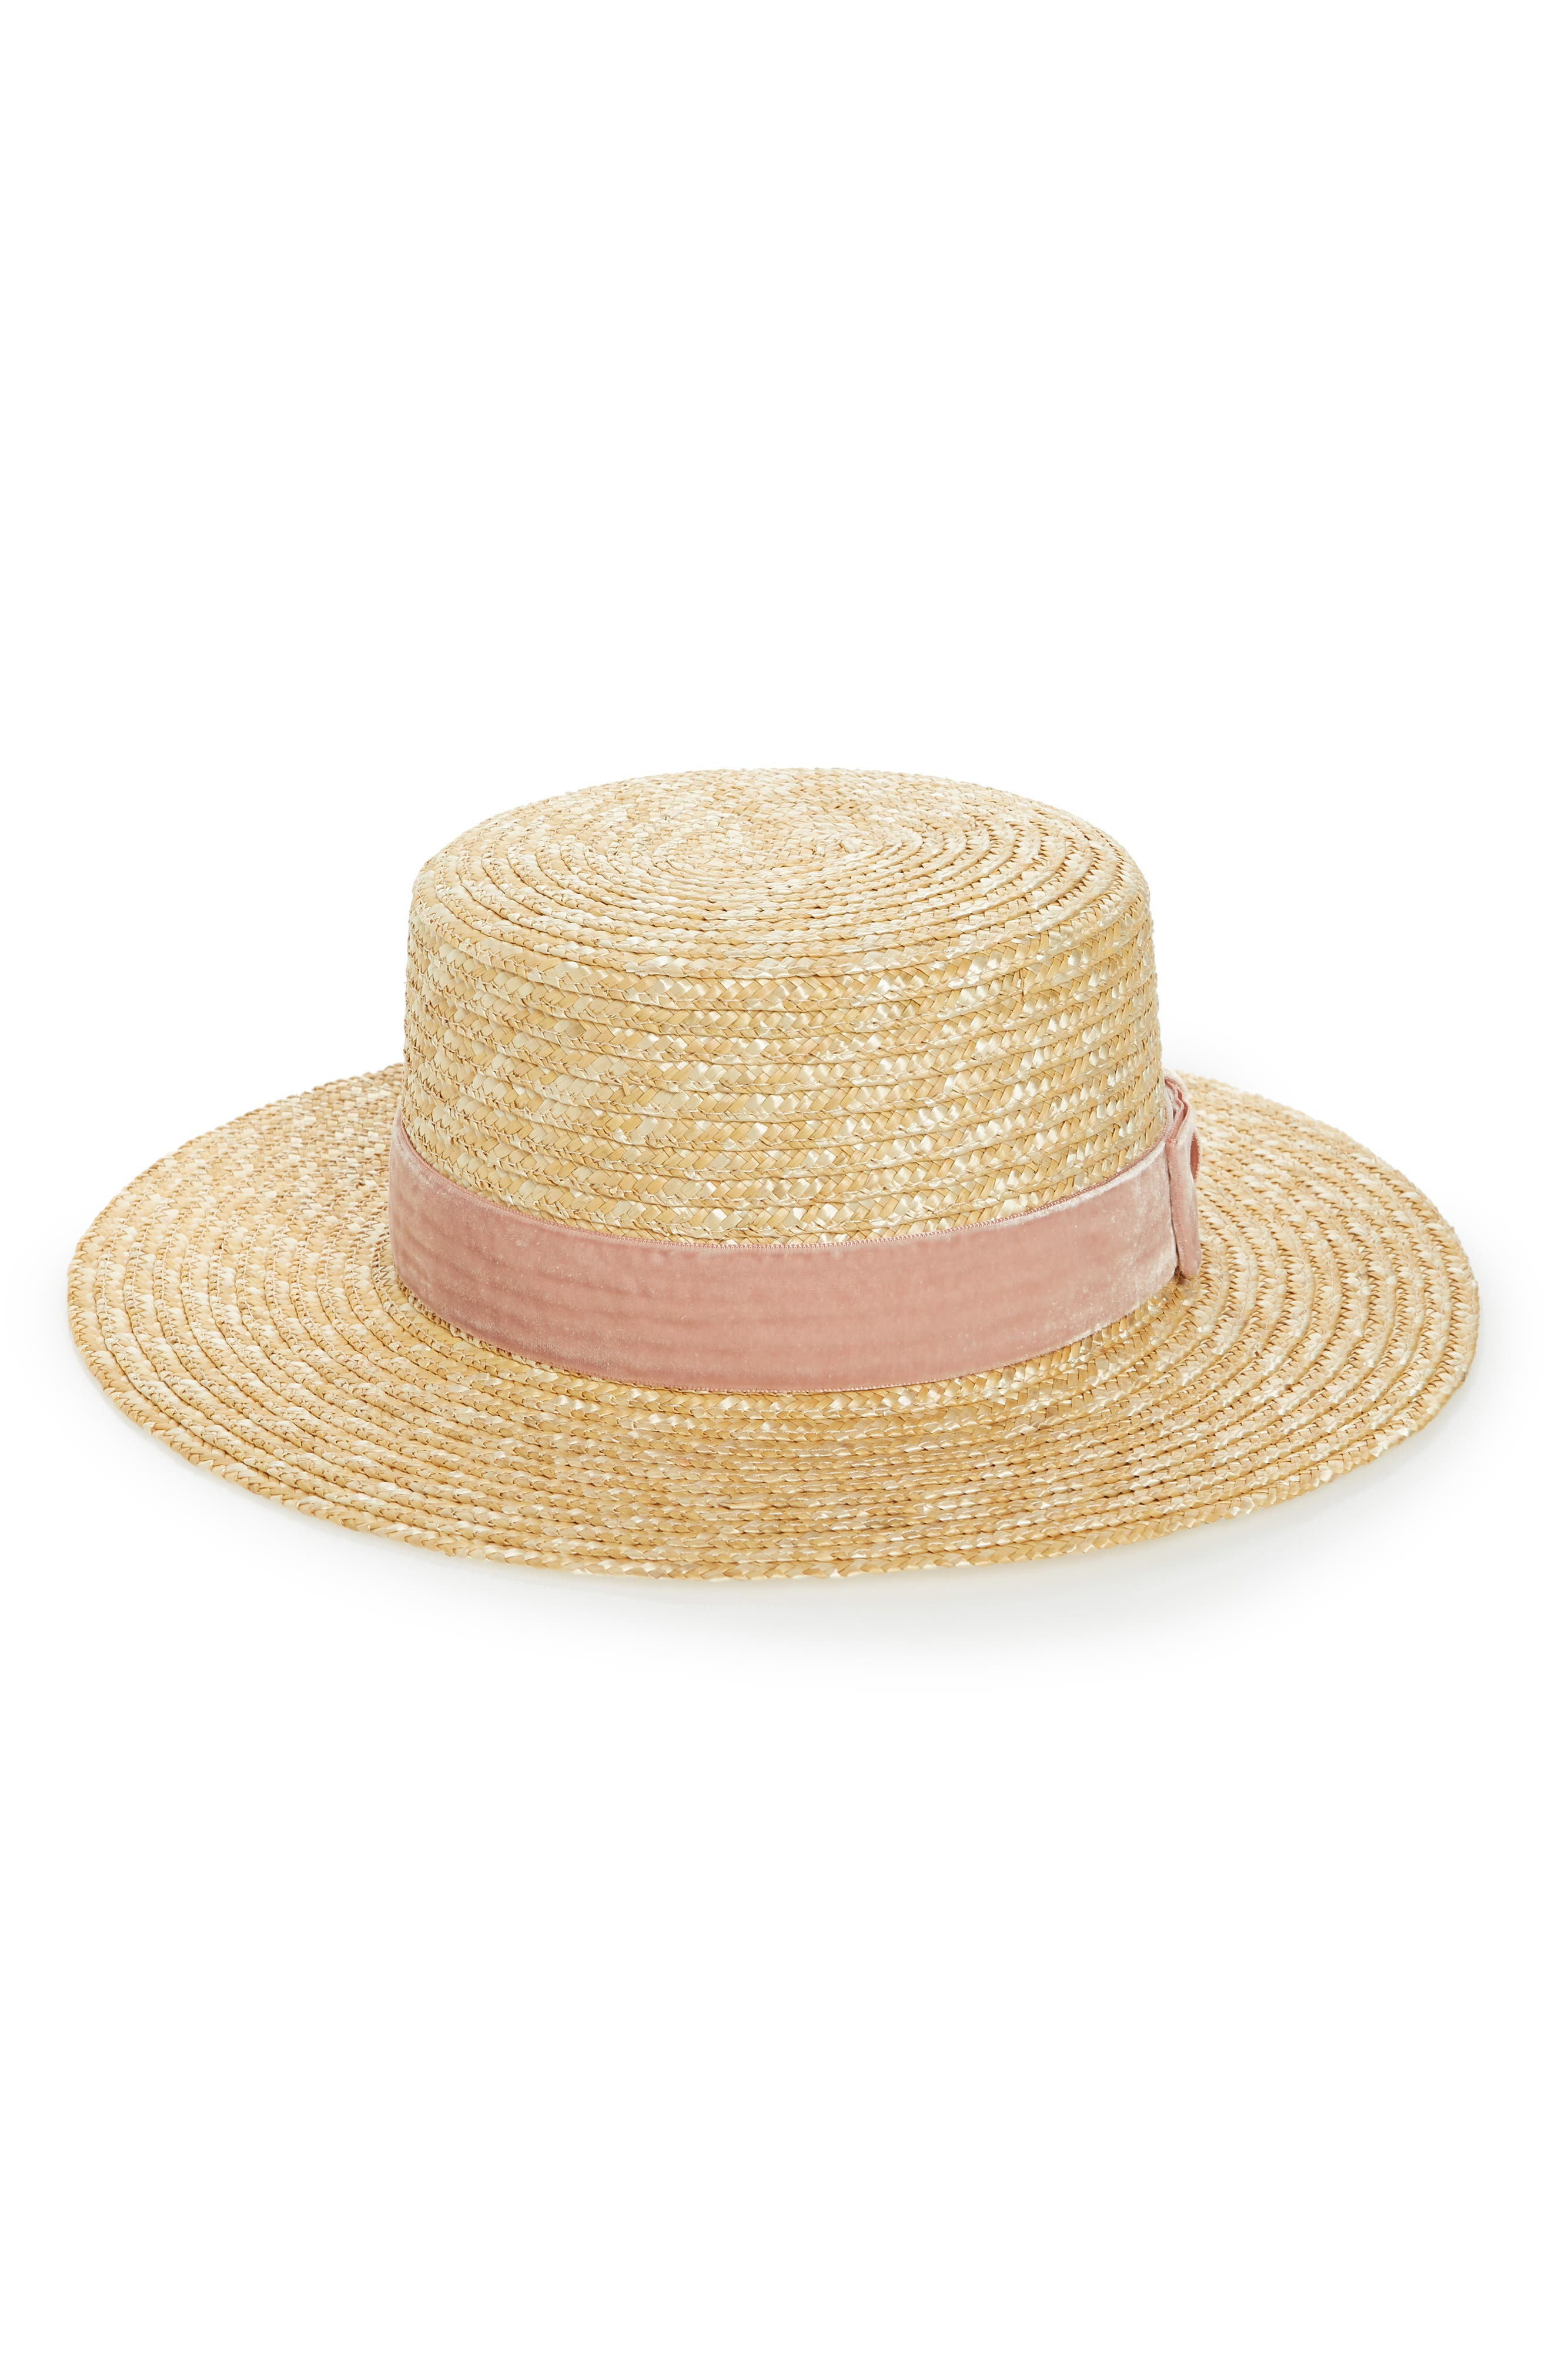 Pink Velour Straw Hat,                         Main,                         color, Pink/ Natural